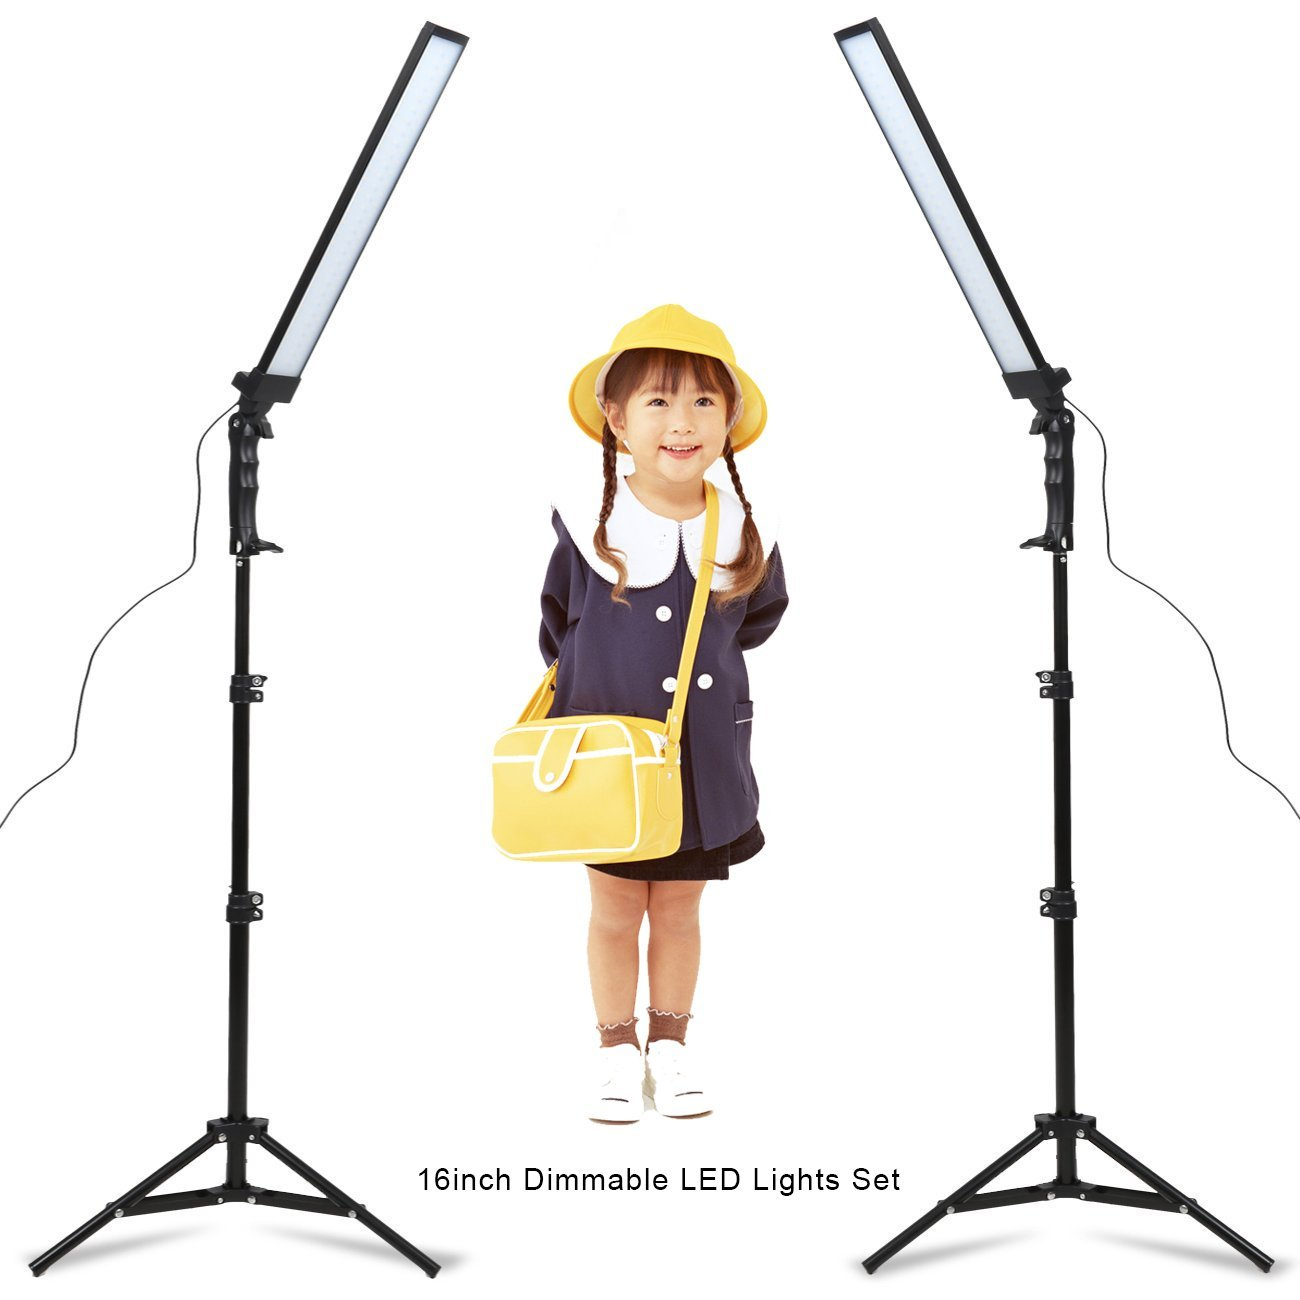 2 Pack 24W LED Dimmable Video Handheld Lights Continuous Lighting for Photography Studio Softbox Lighting Kit Adjustable Light Stand Kit with Tripod for Camera Photo Studio Shooting,YouTube,Live